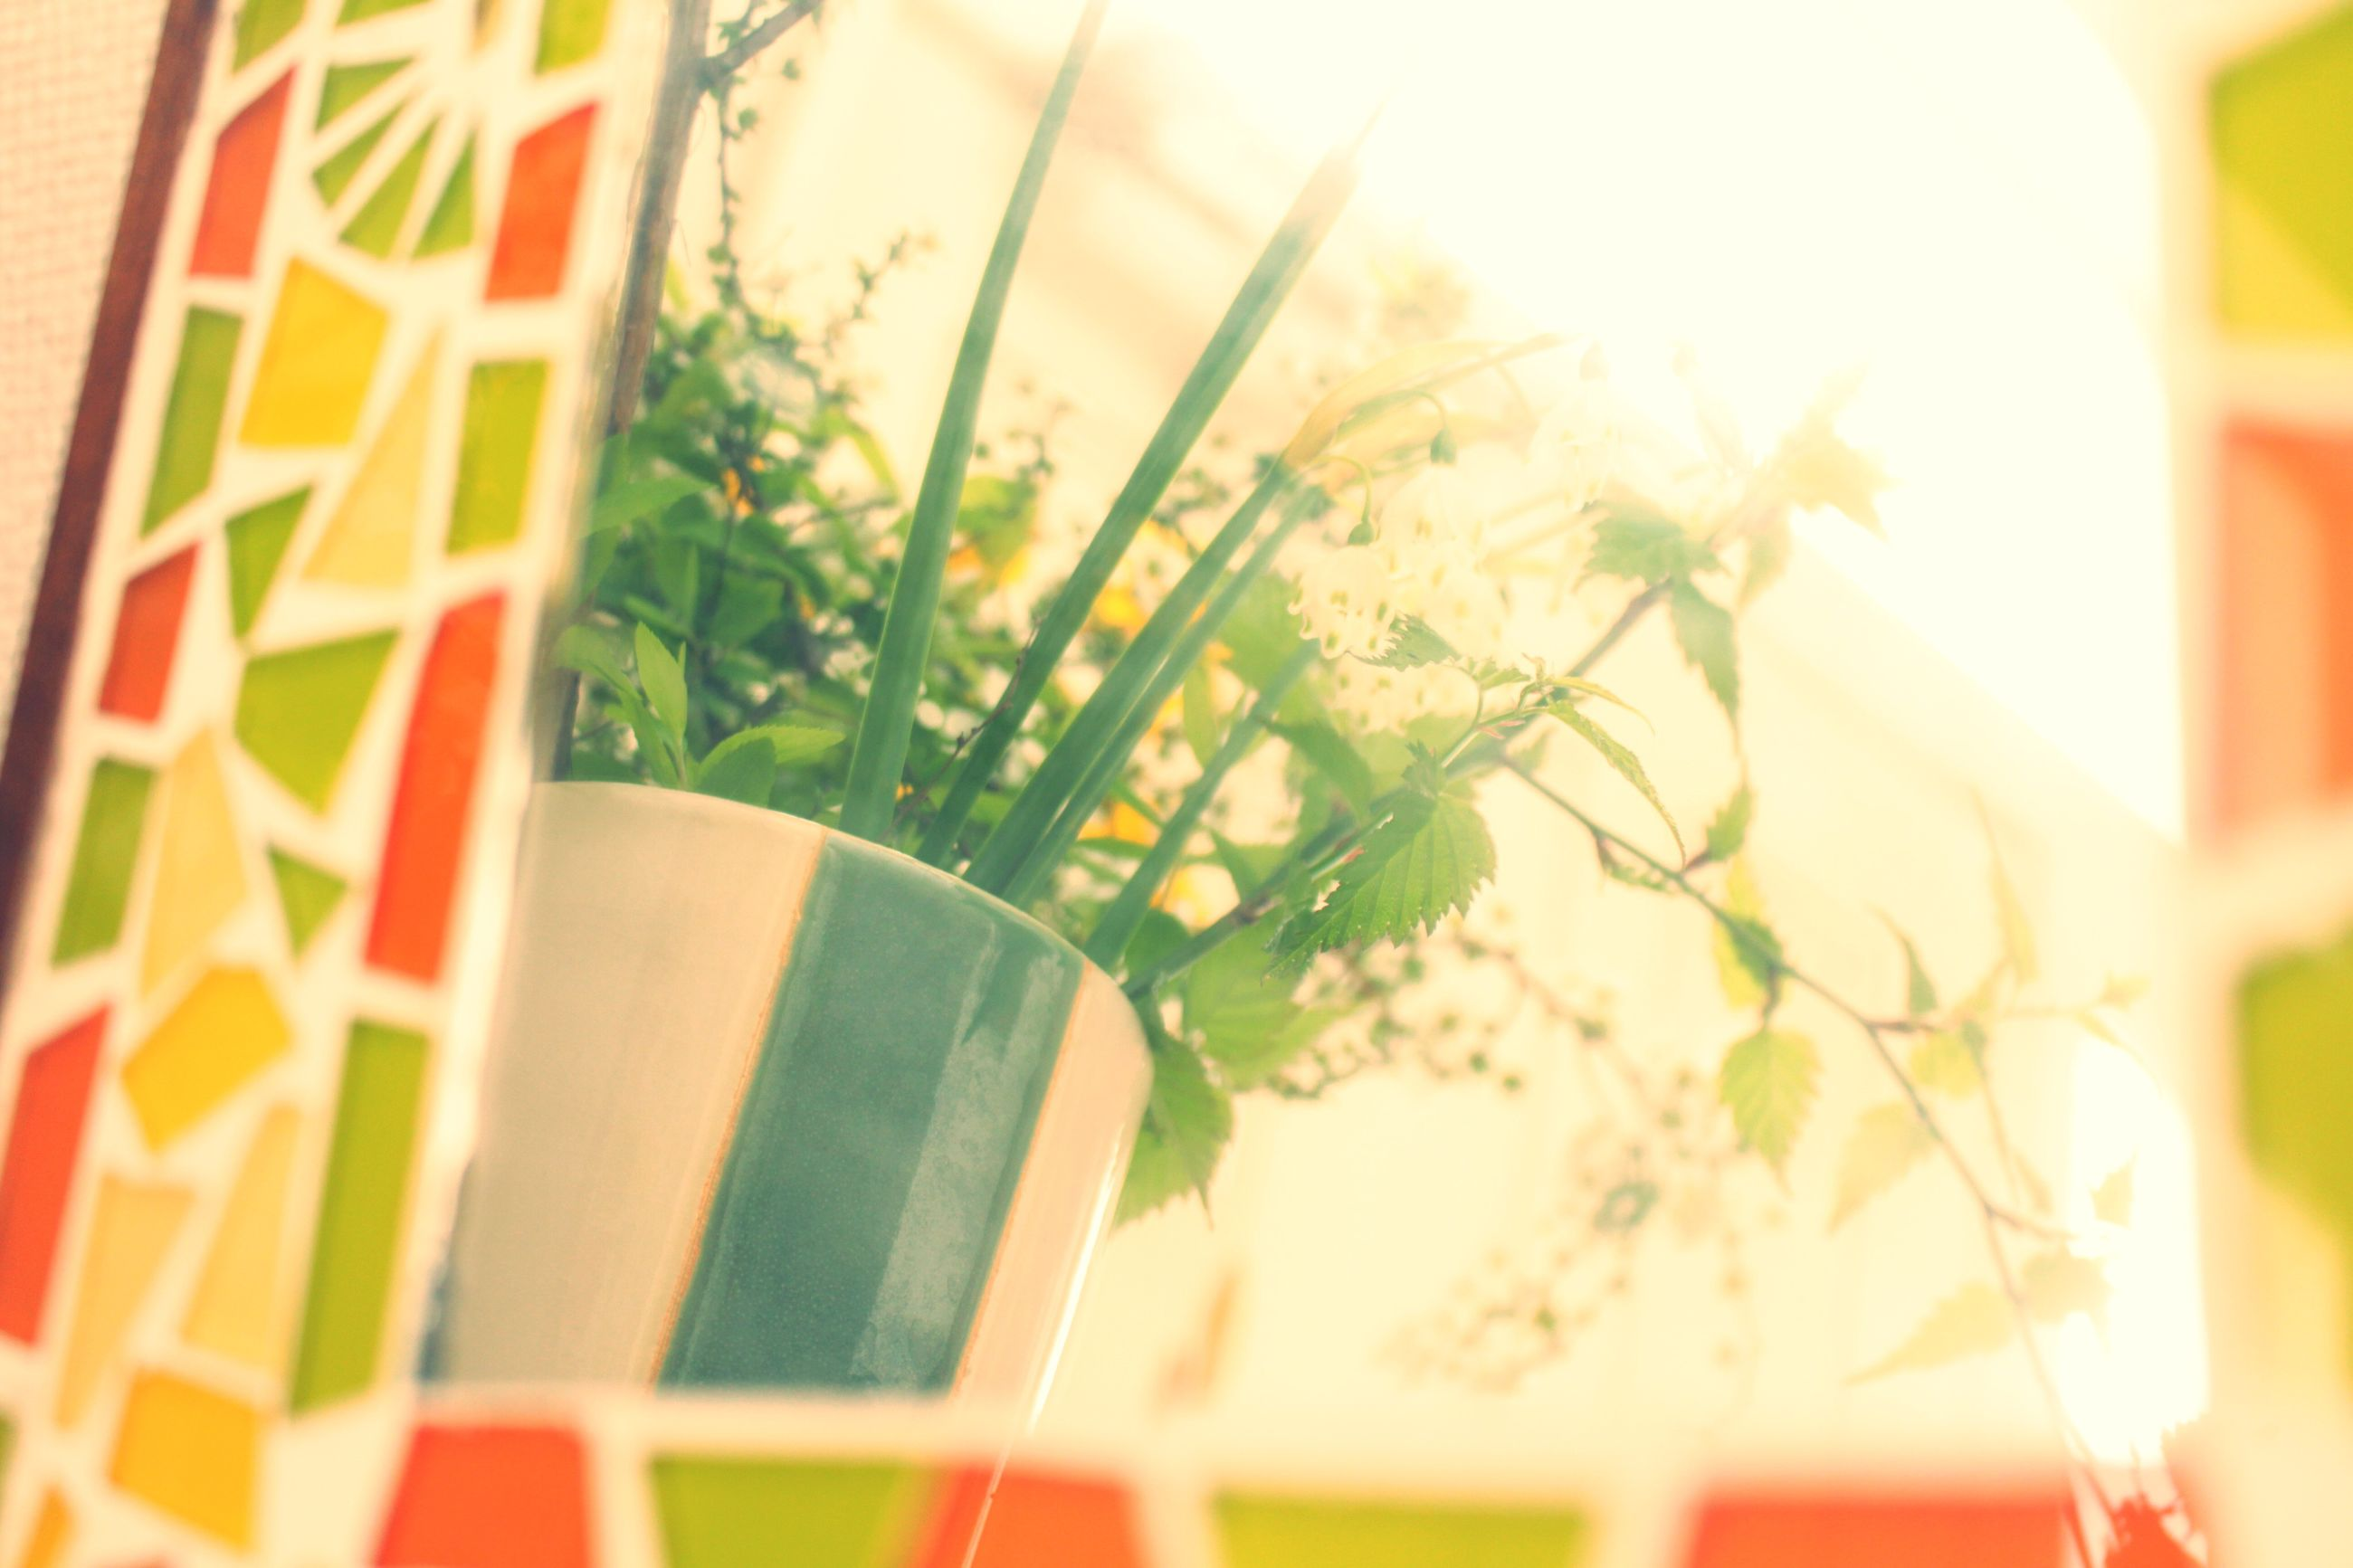 growth, close-up, flower, plant, selective focus, focus on foreground, sunlight, nature, potted plant, no people, indoors, day, built structure, fragility, freshness, leaf, architecture, low angle view, beauty in nature